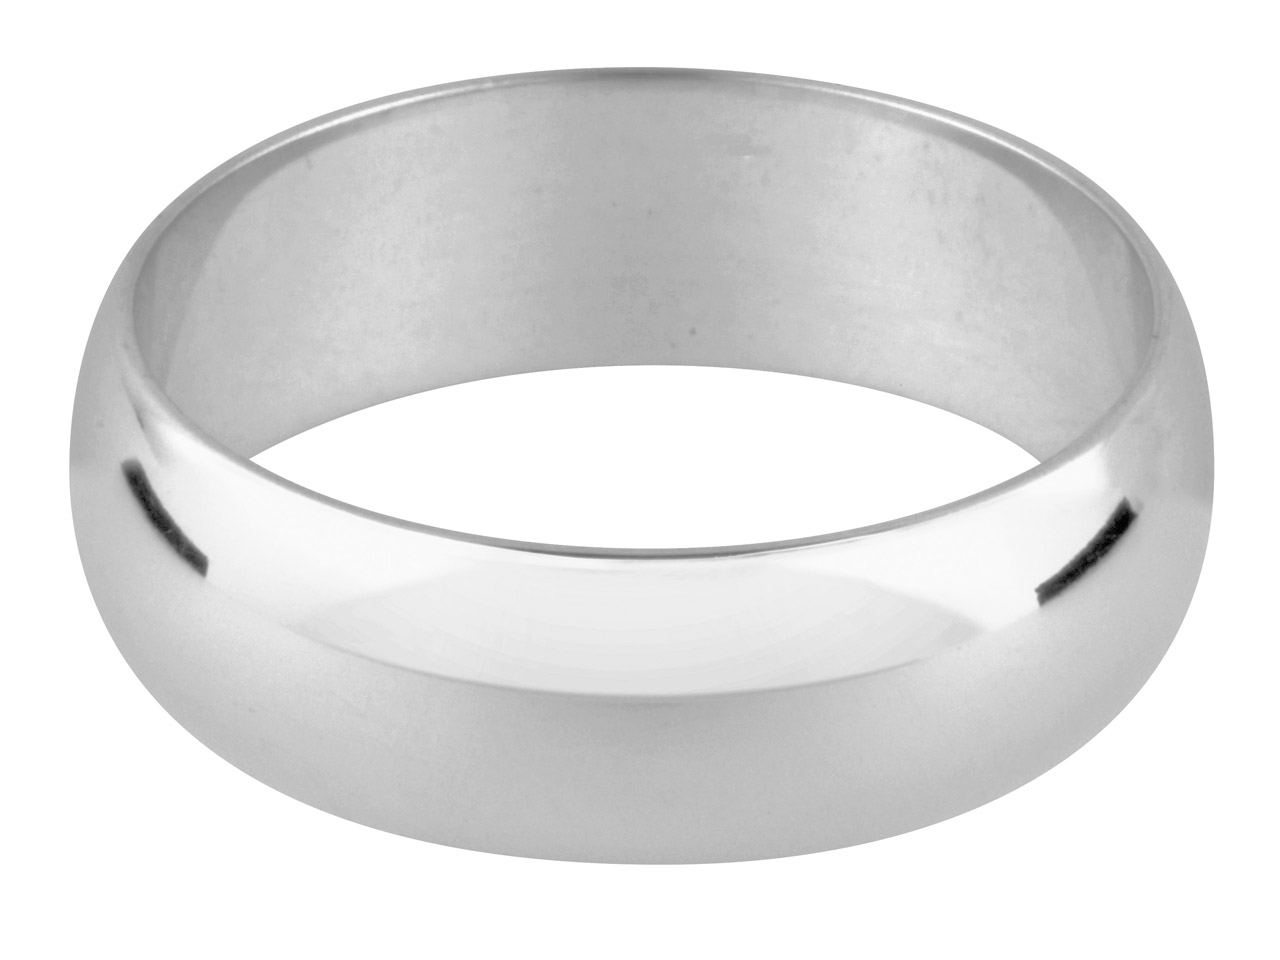 Platinum D Shape Wedding Ring 5.0mm M 7.2gms Medium Weight Hallmarked   Wall Thickness 1.32mm